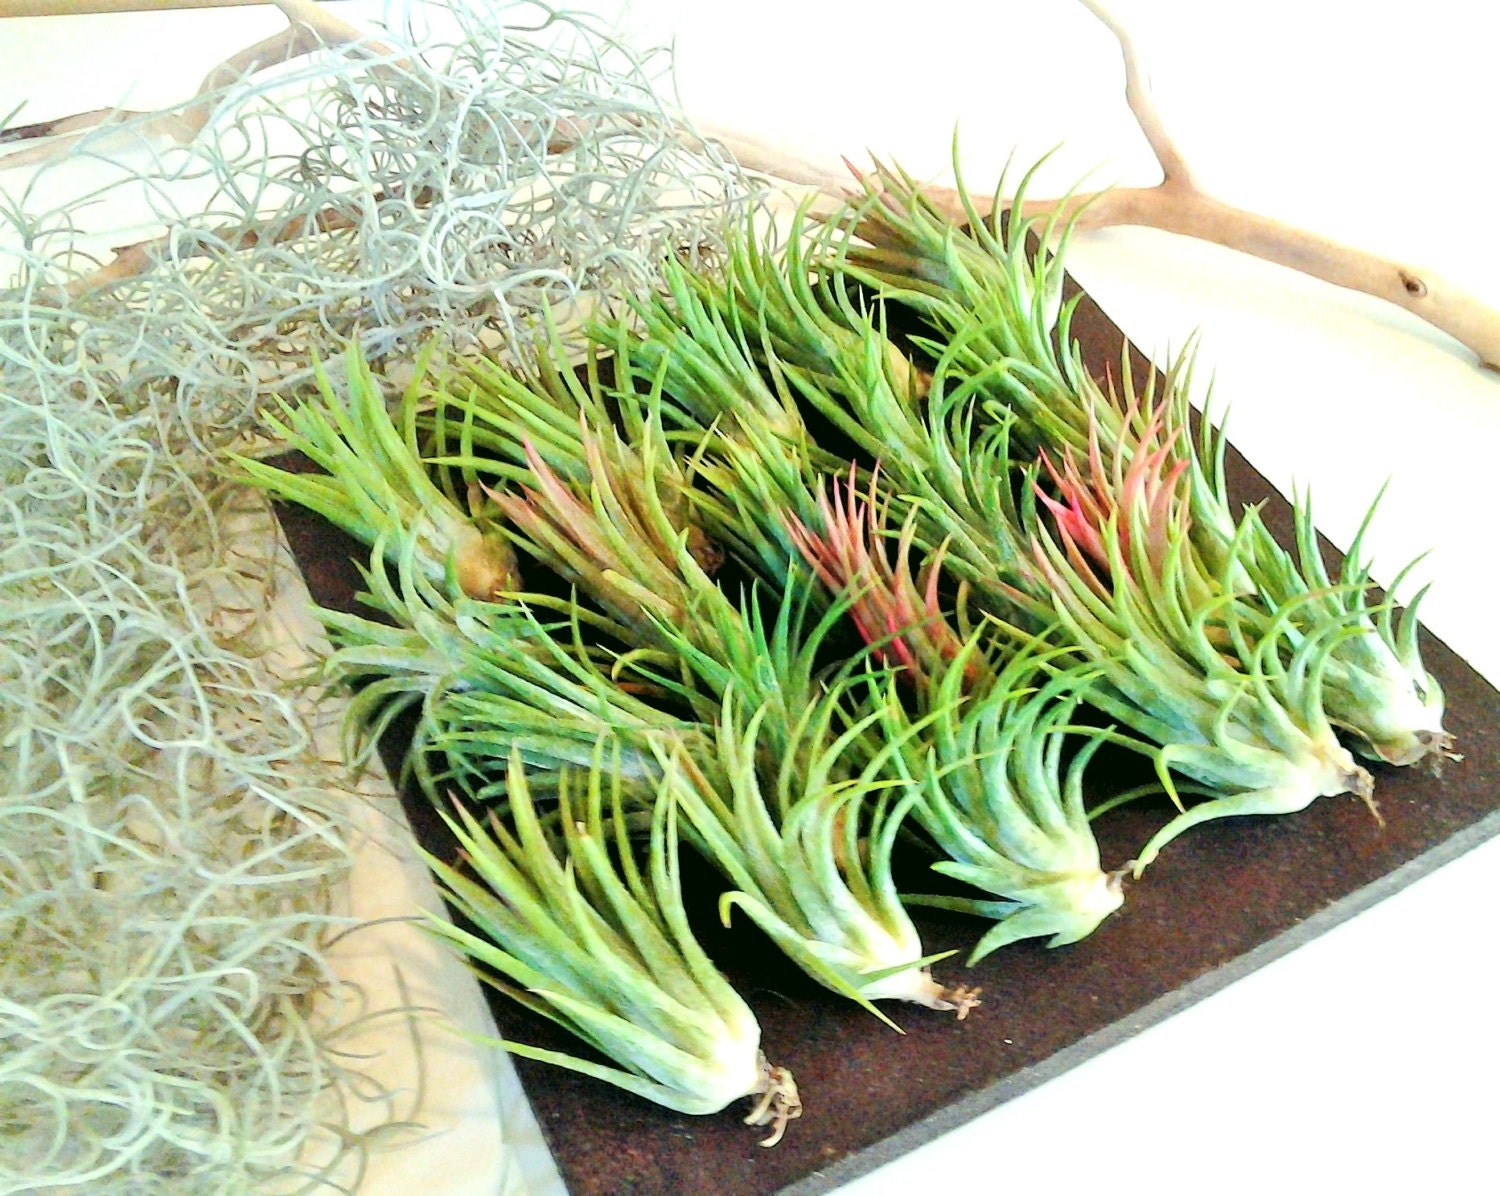 10 air plants free moss wholesale air plants wedding for Cheap air plants